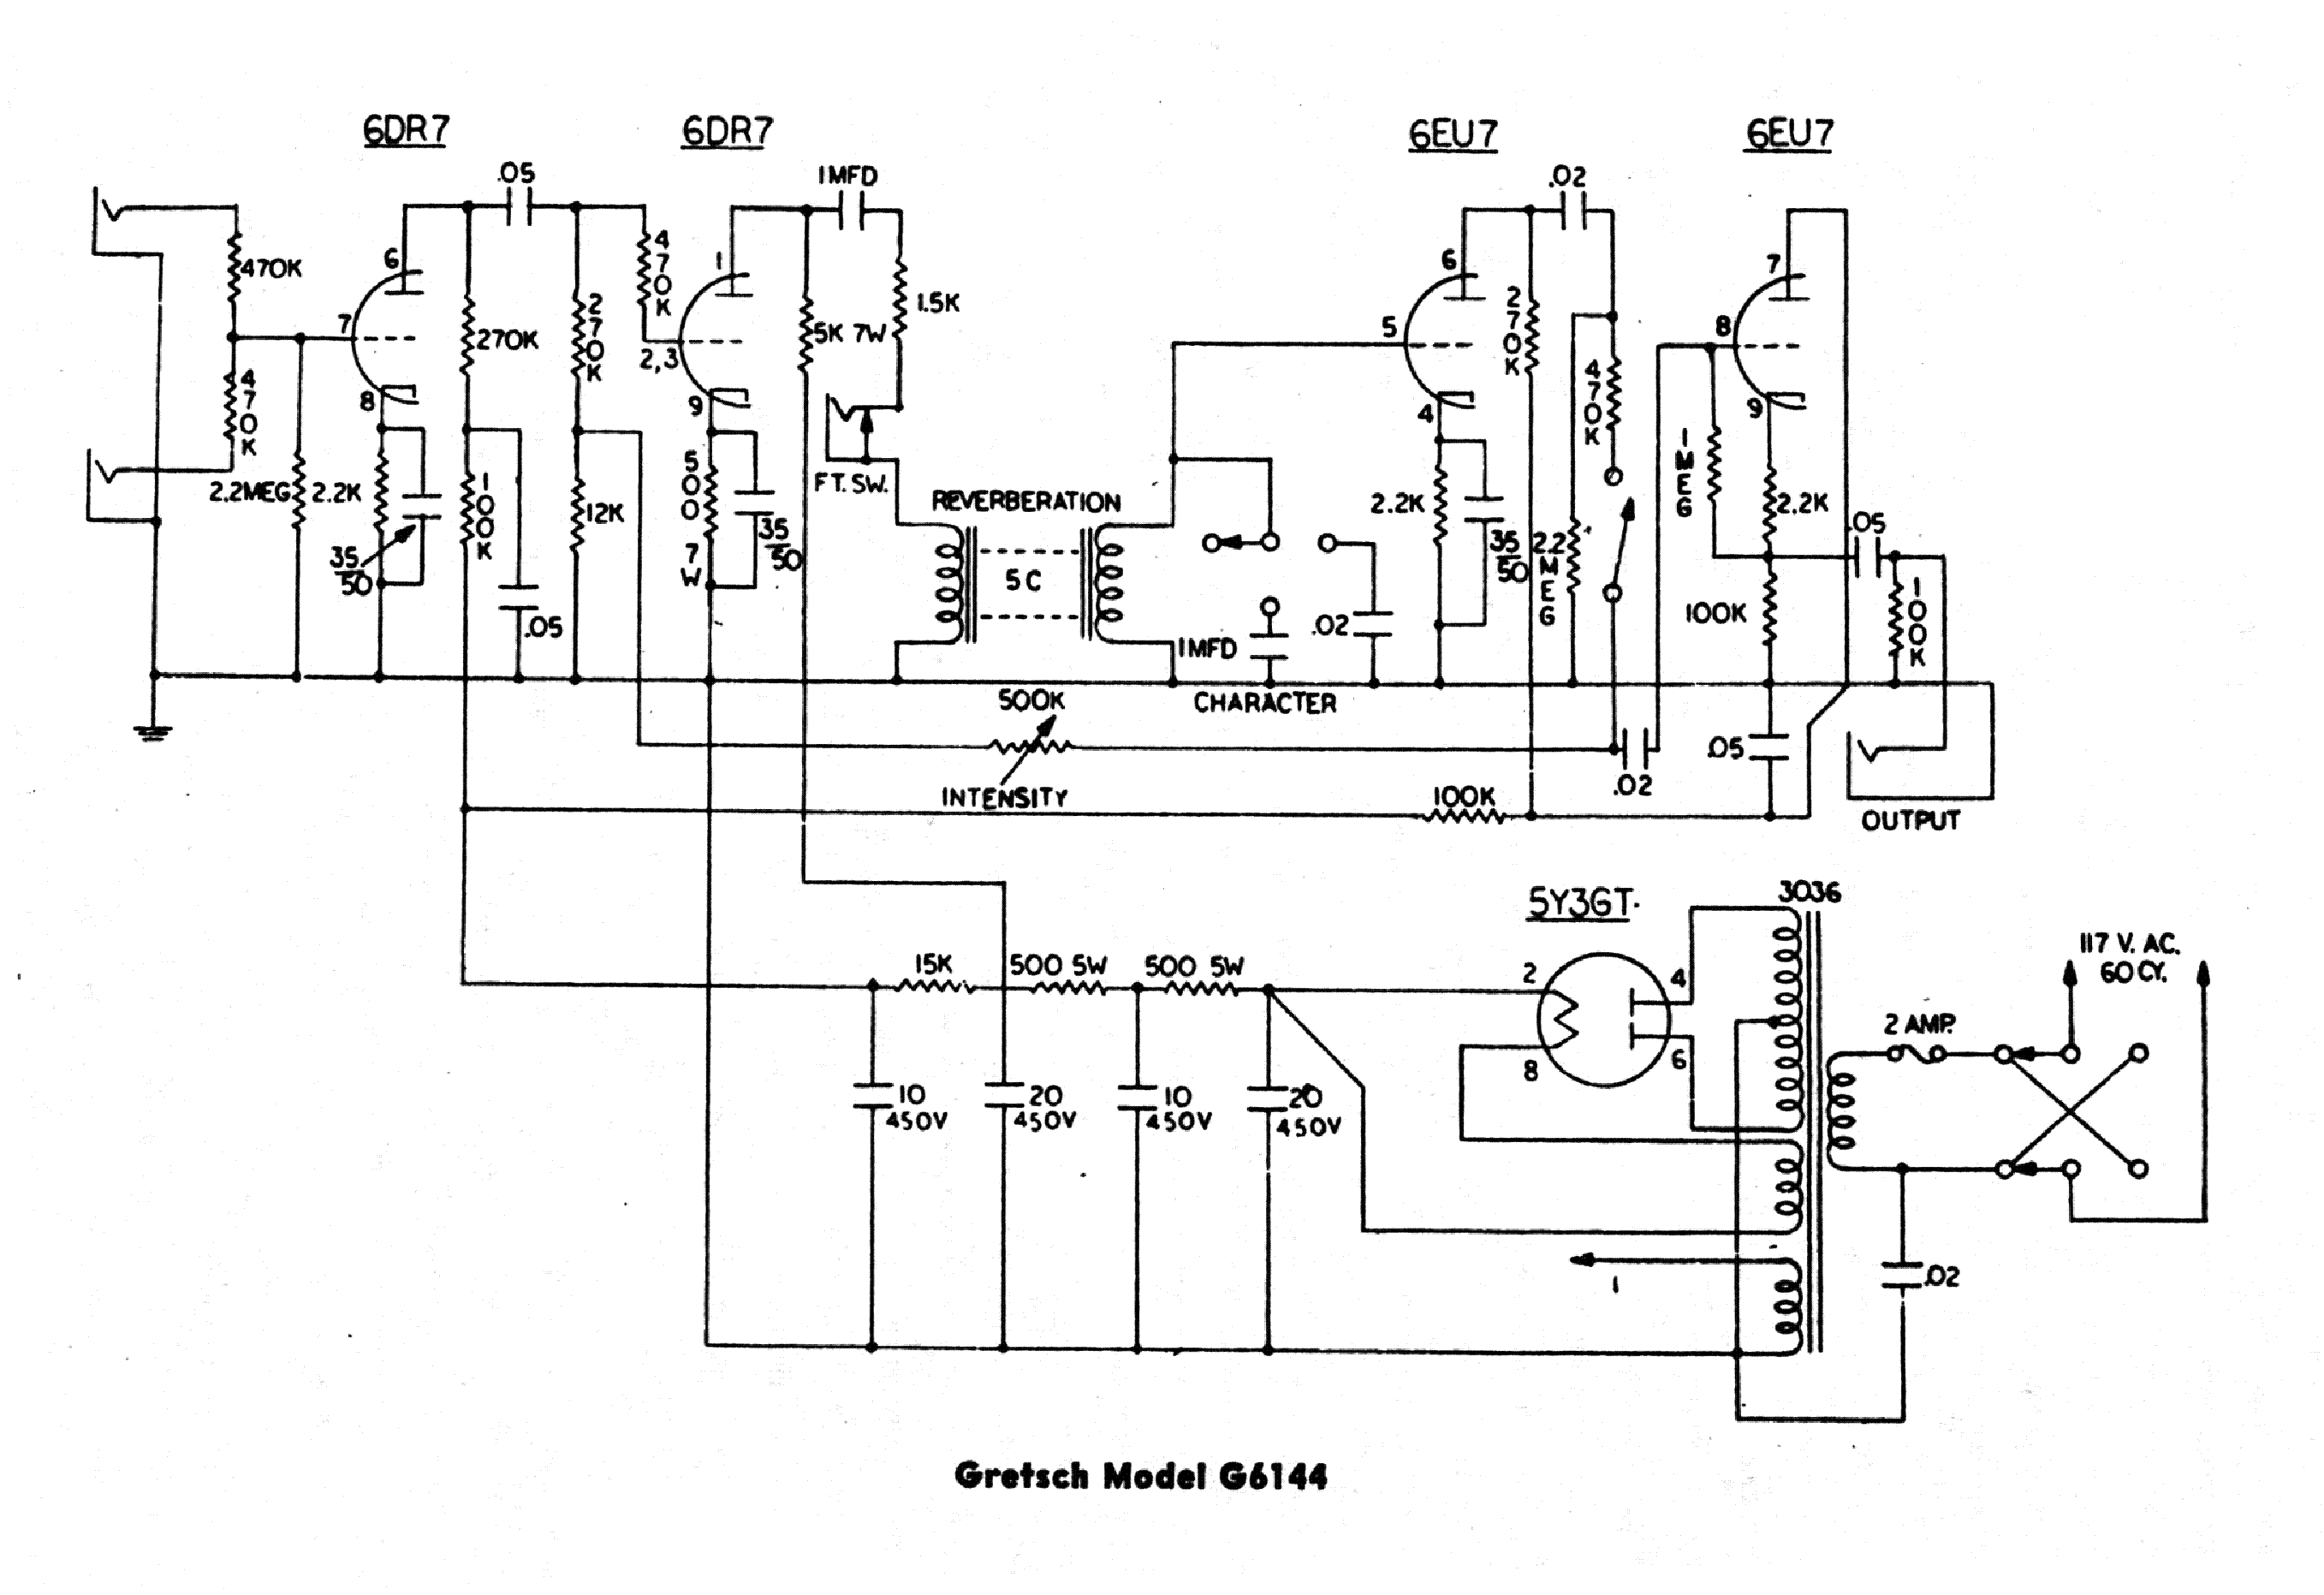 Gretsch Guitar Schematics